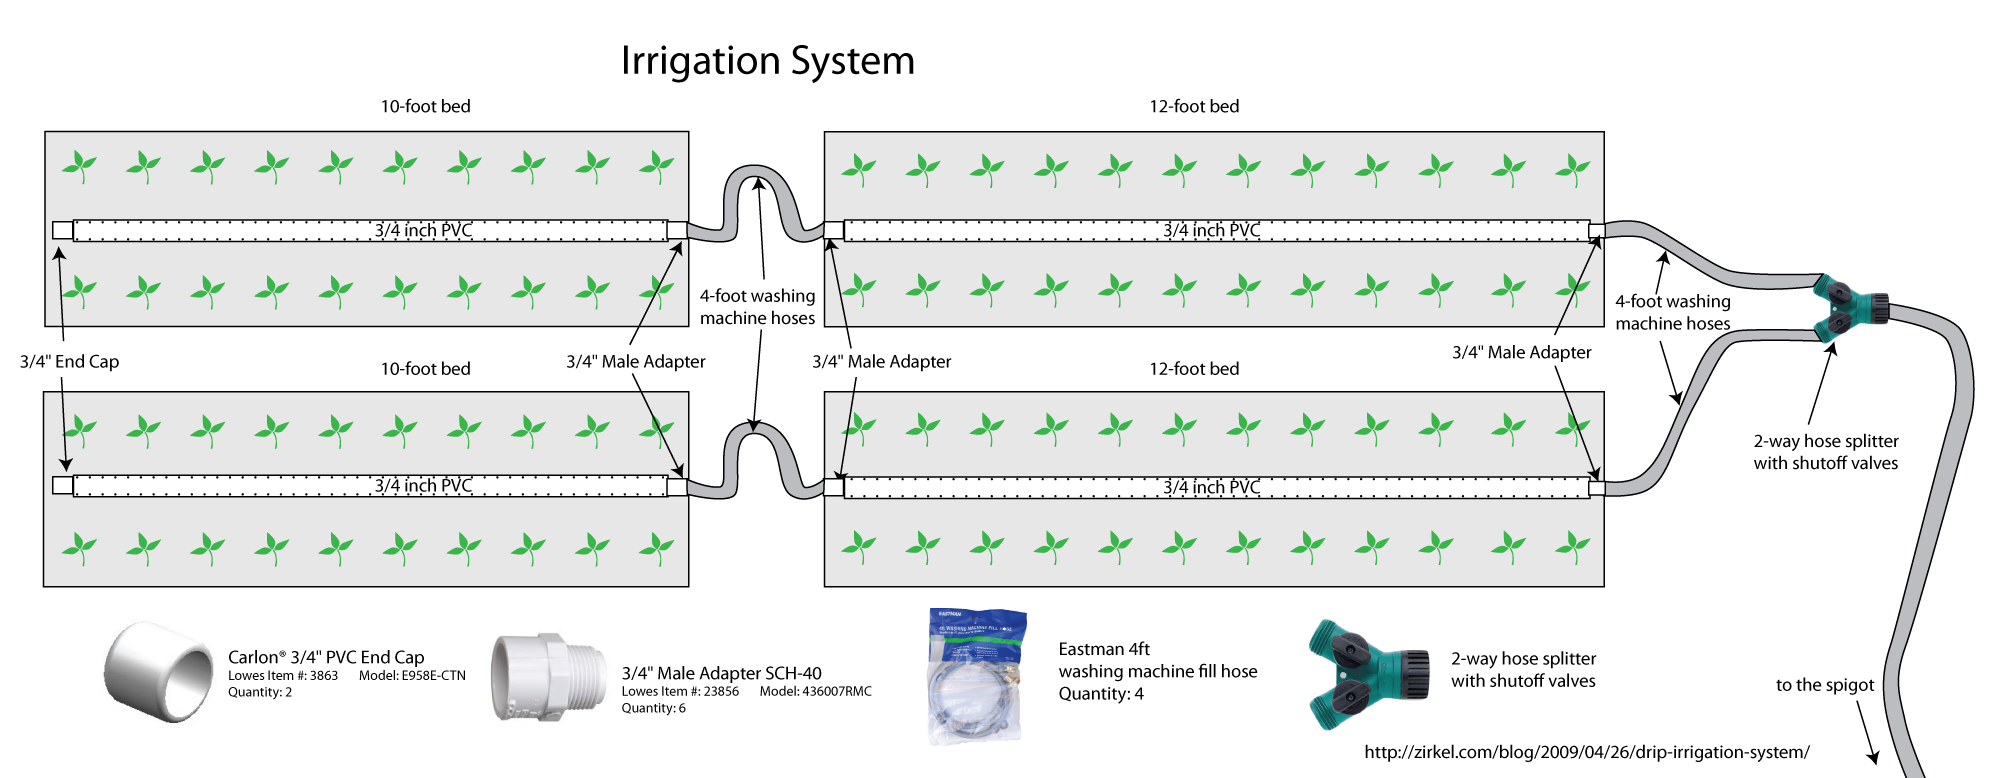 Drip Irrigation Systems wwwgalleryhipcom The Hippest